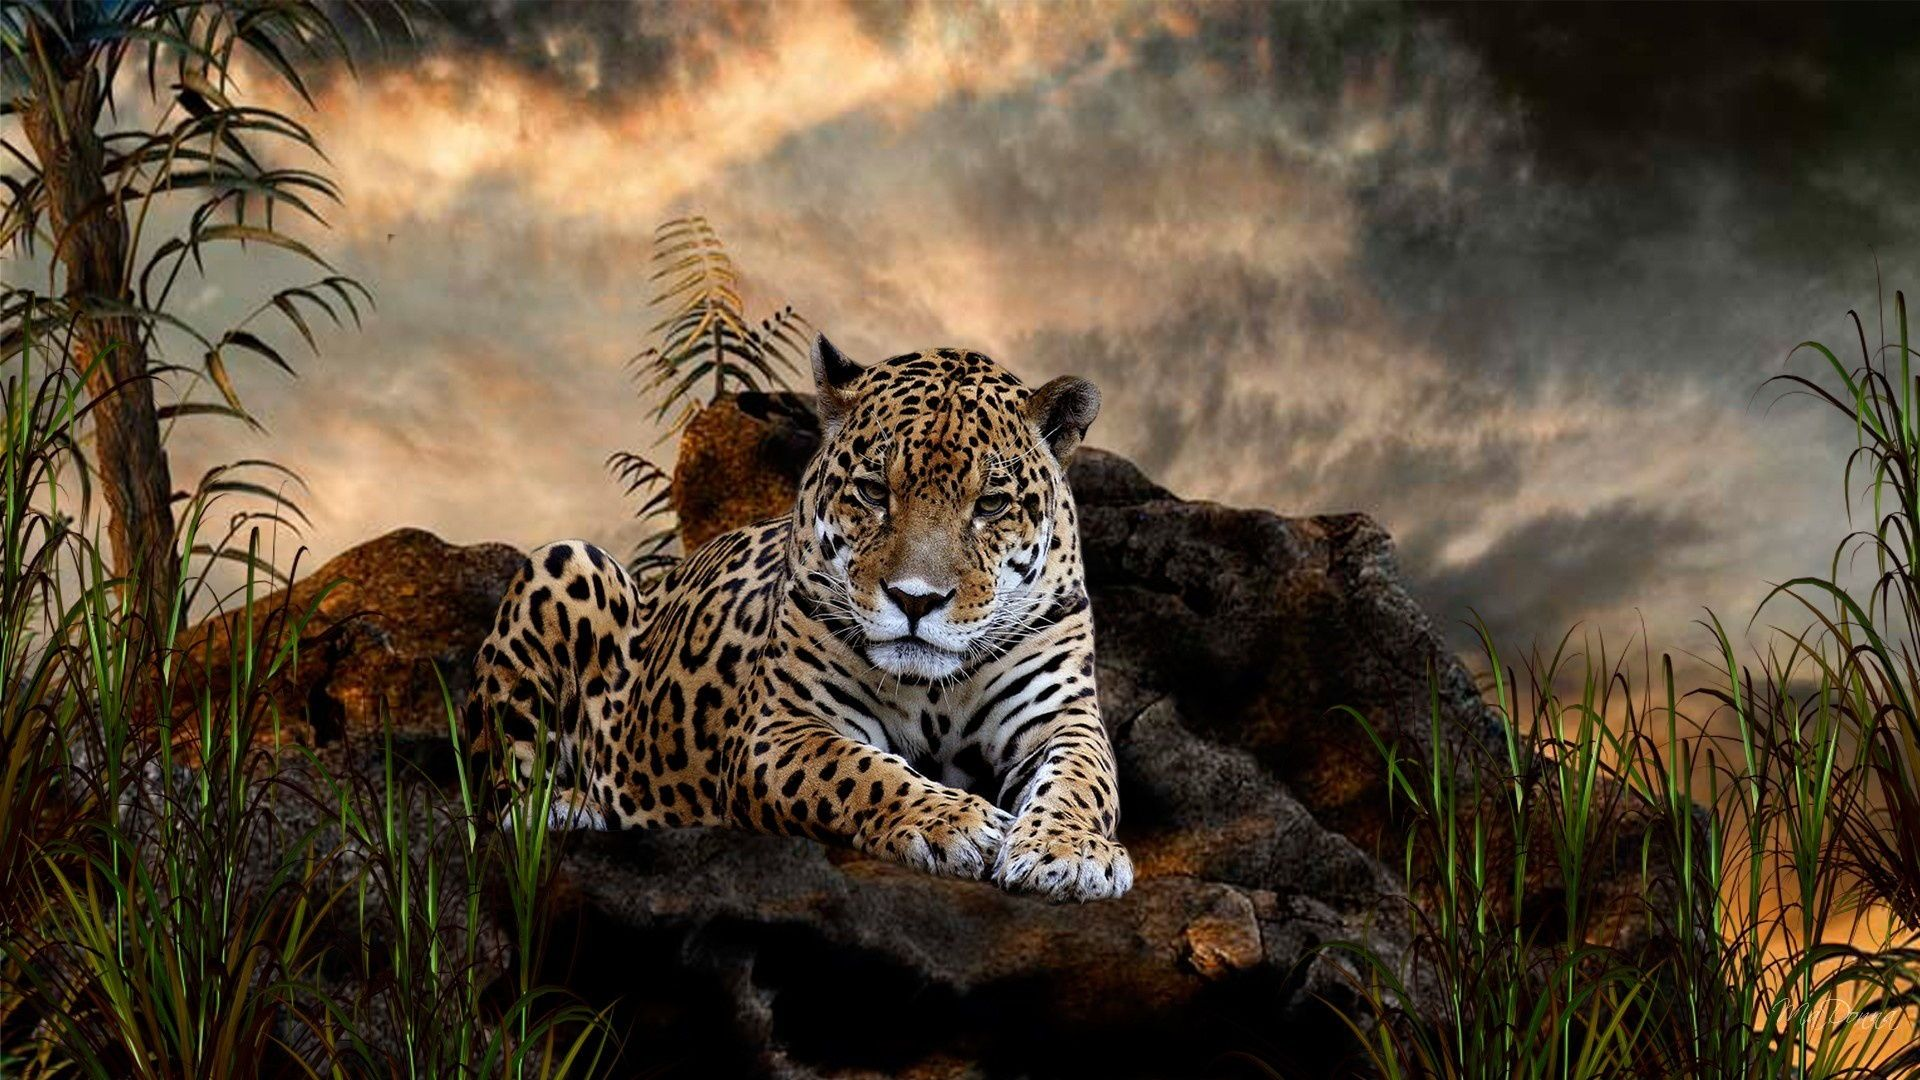 ... Jaguar Animal Wallpaper